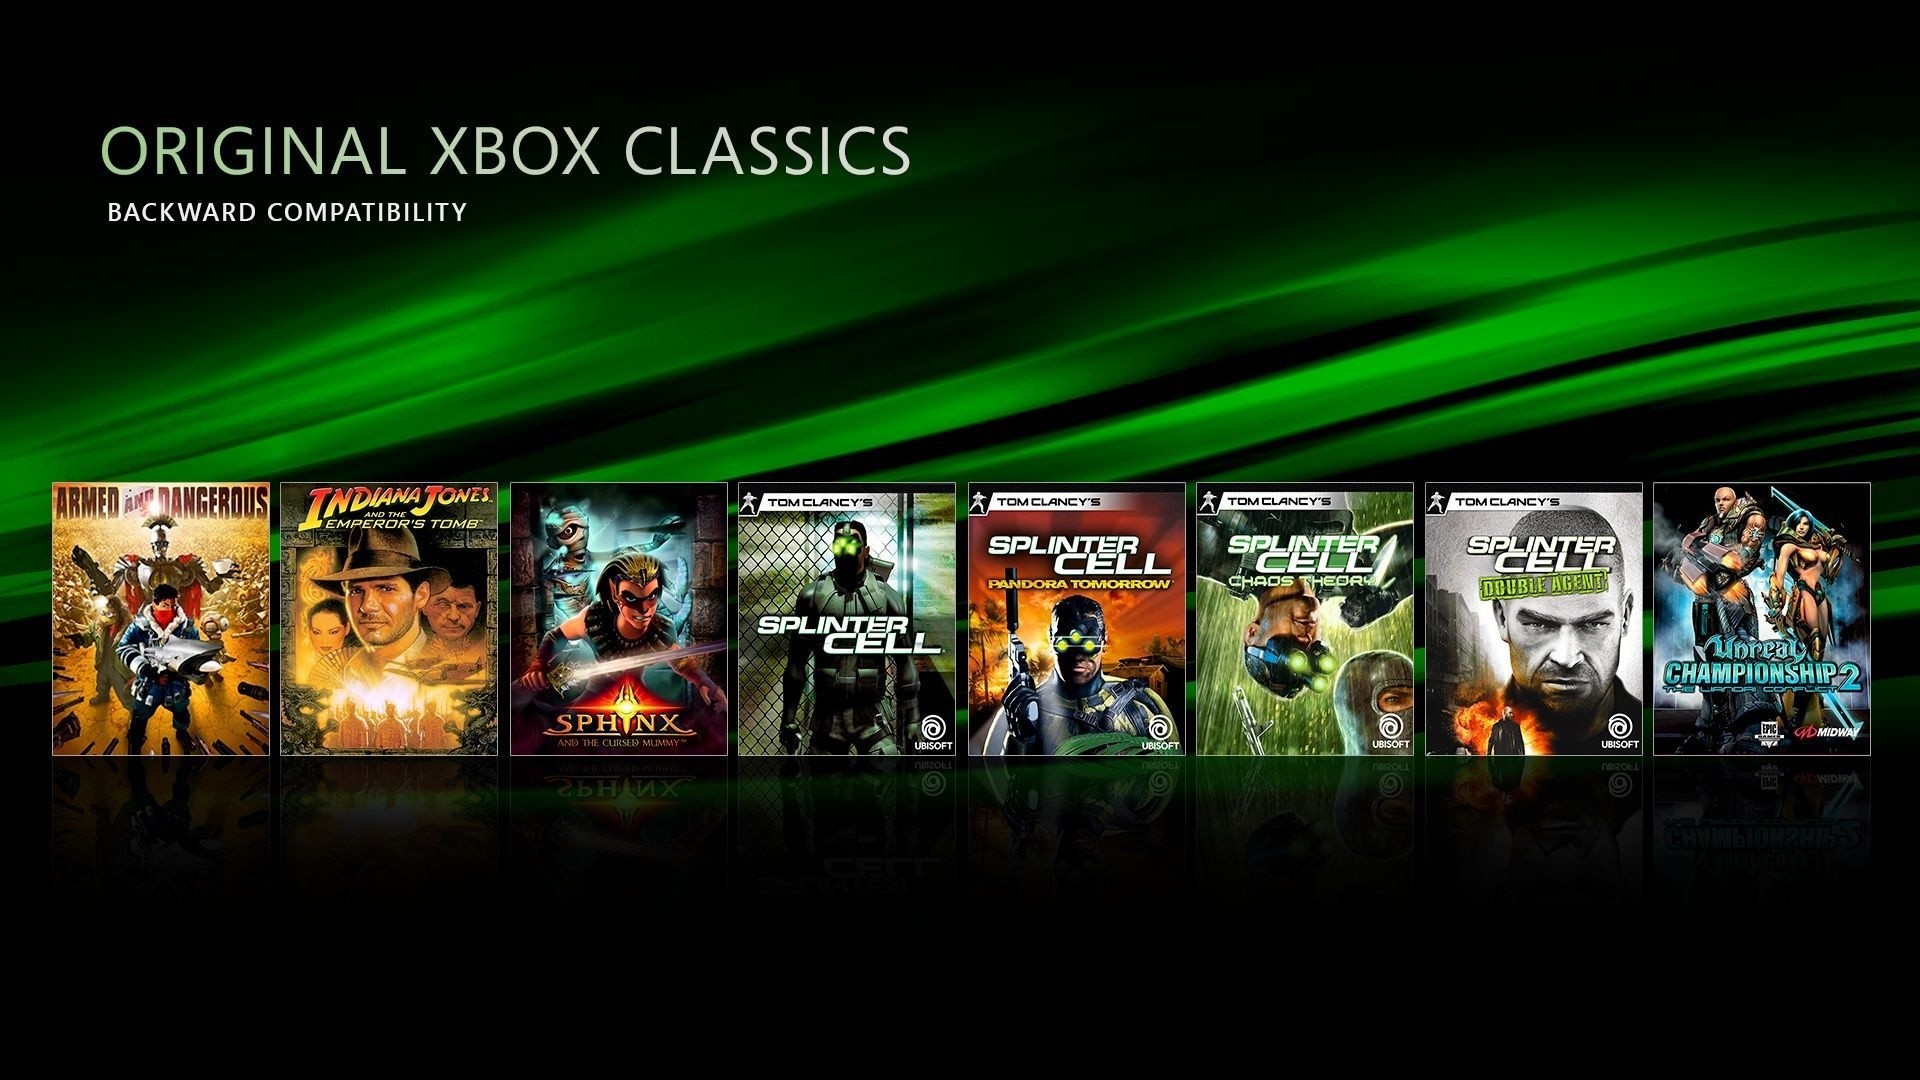 Classic titles on the original Xbox.